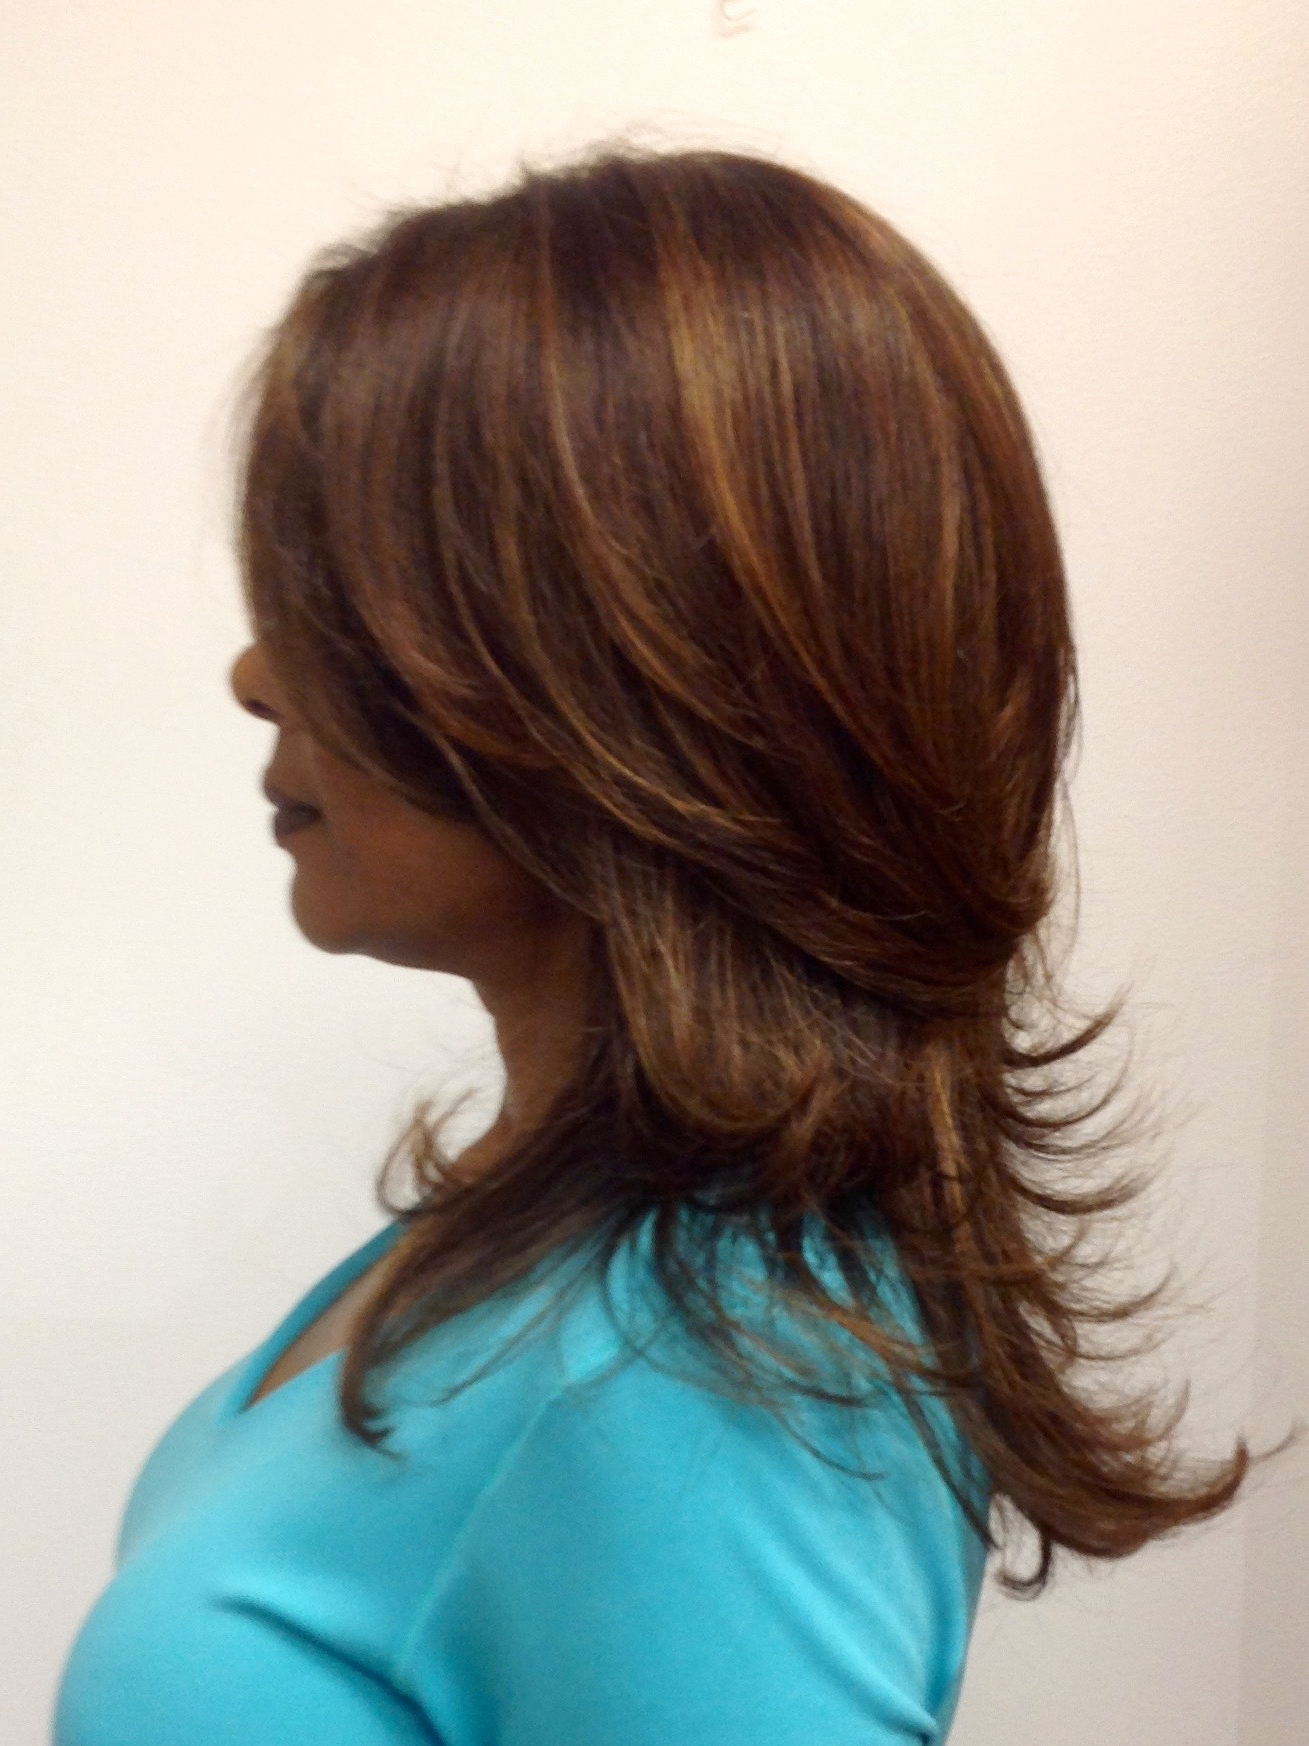 Short Layers On Long Hair With Highlights | Theroyalhairtreatment With Regard To Long And Short Layers (View 5 of 25)